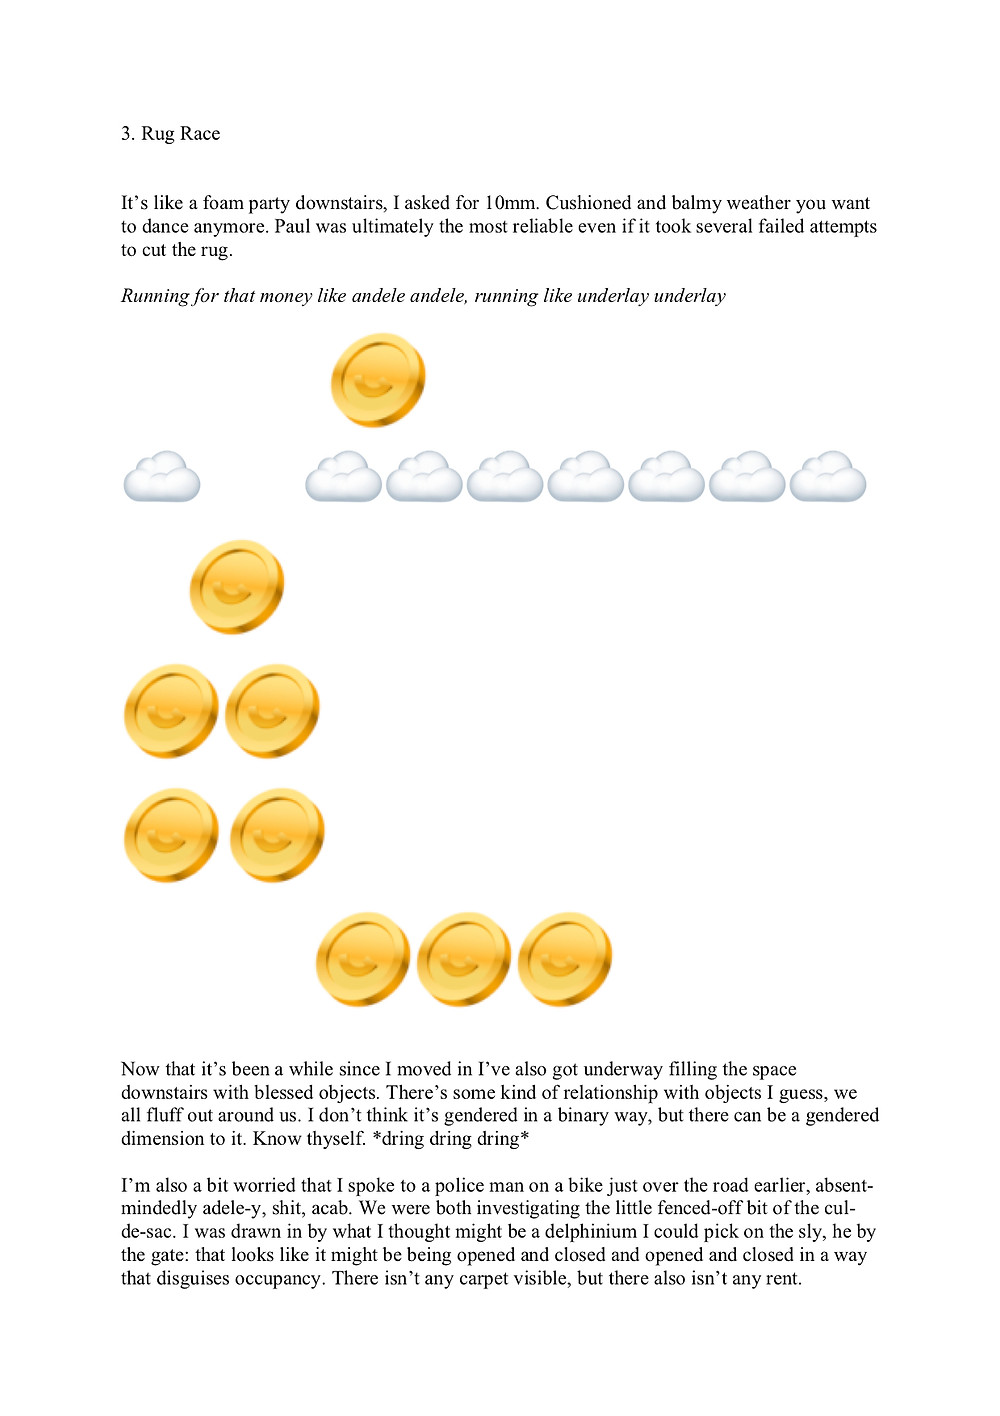 Third part of the essay, entitled 3. Rug Race with a gold coin animation hanging above a row of large white emoji clouds interspersed amongst the text, followed by a triangular tower of more gold animated coins below the clouds.